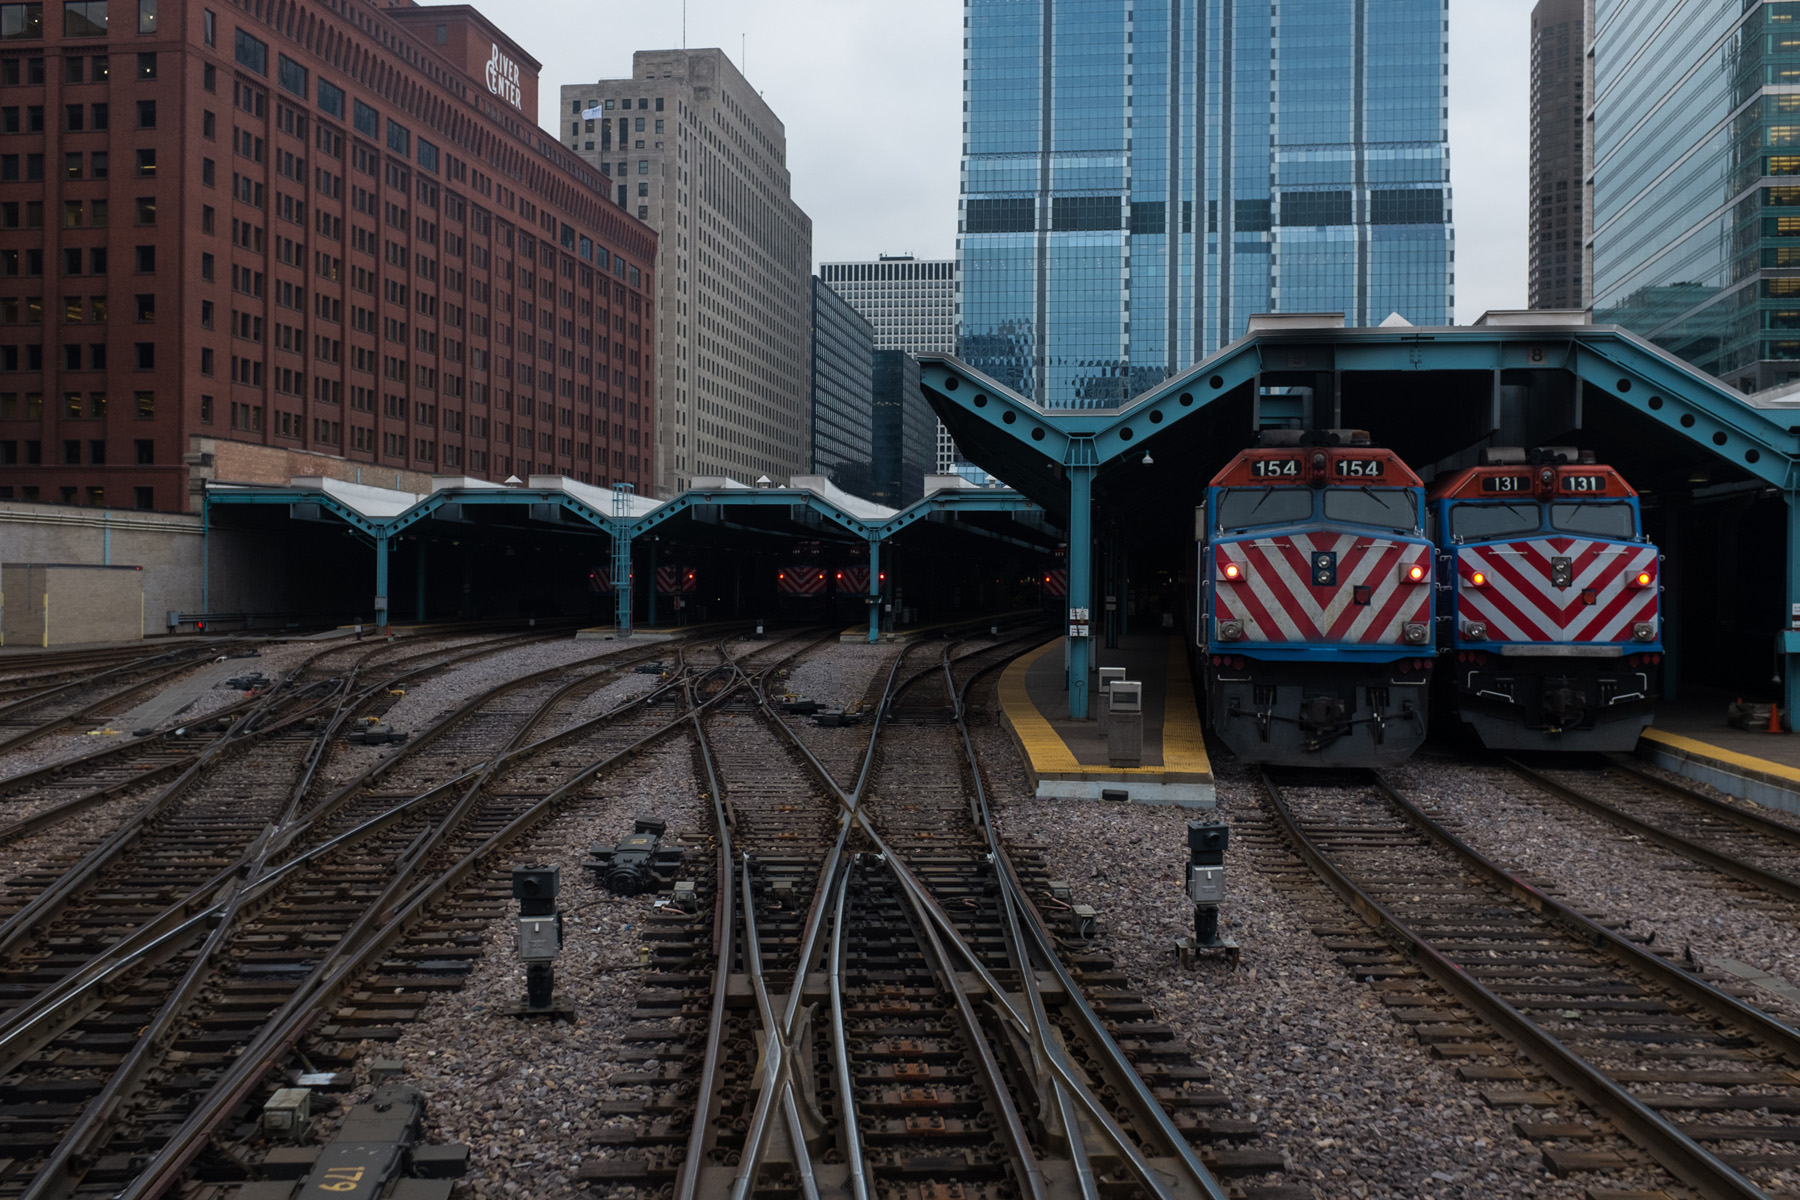 a shot of Ogilvie station with two trains sitting on the platforms, taken from the back of a train as it was leaving the station.